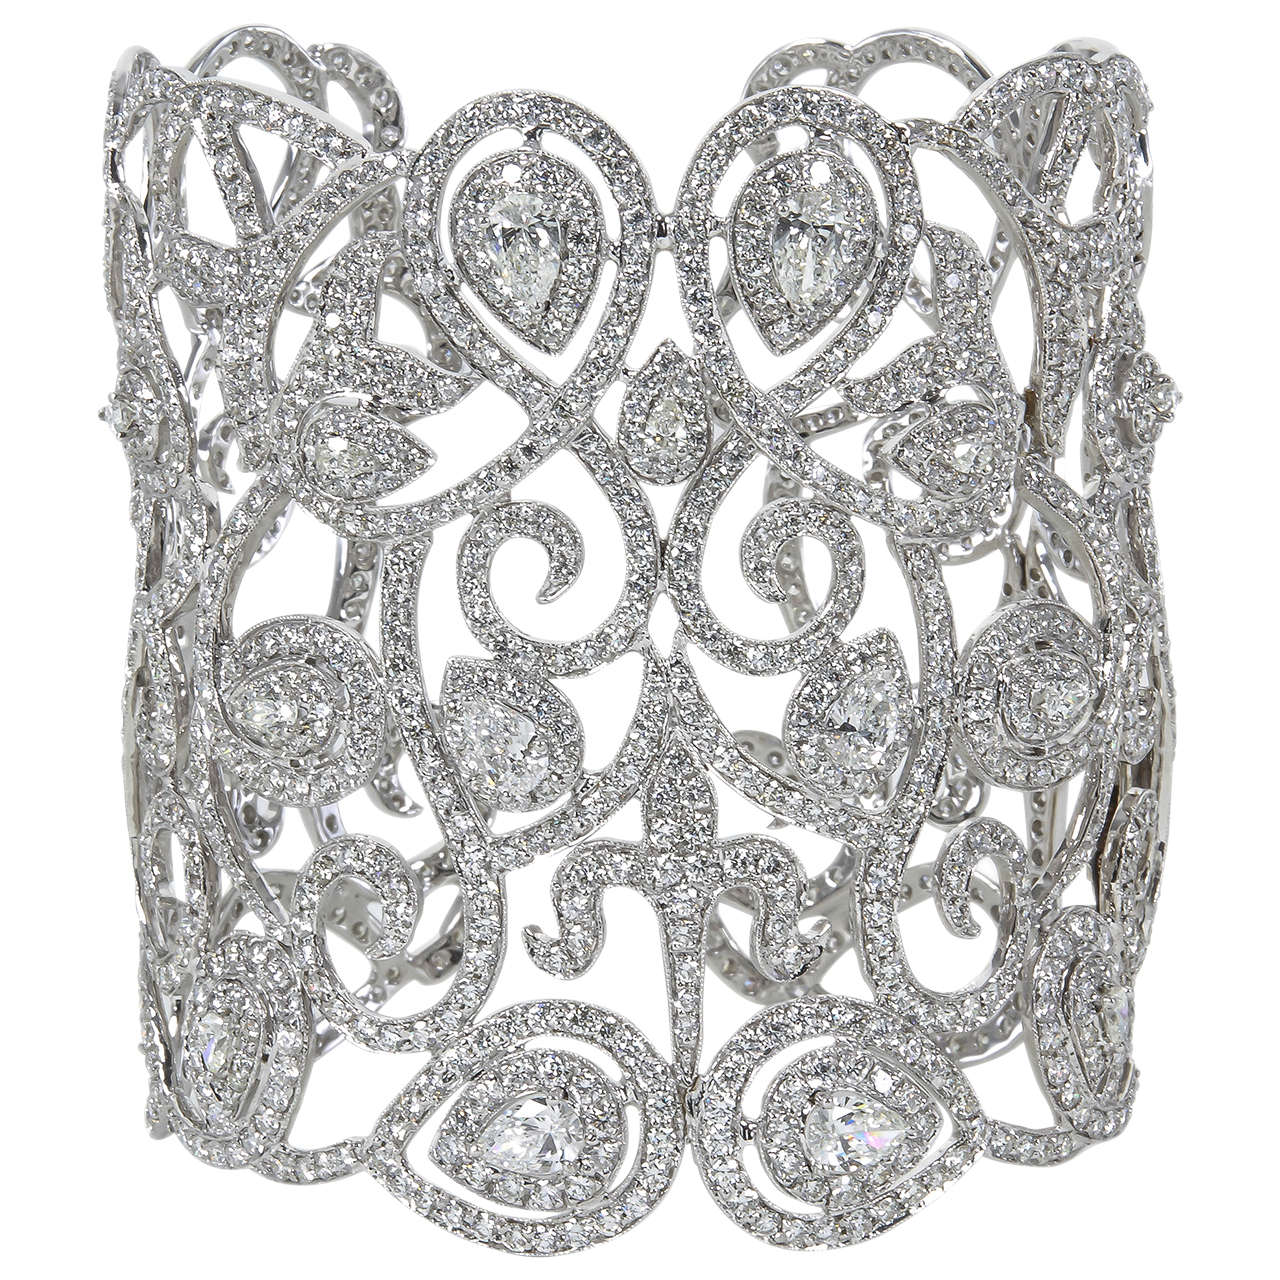 Magnificent Wide Diamond Cuff Bracelet